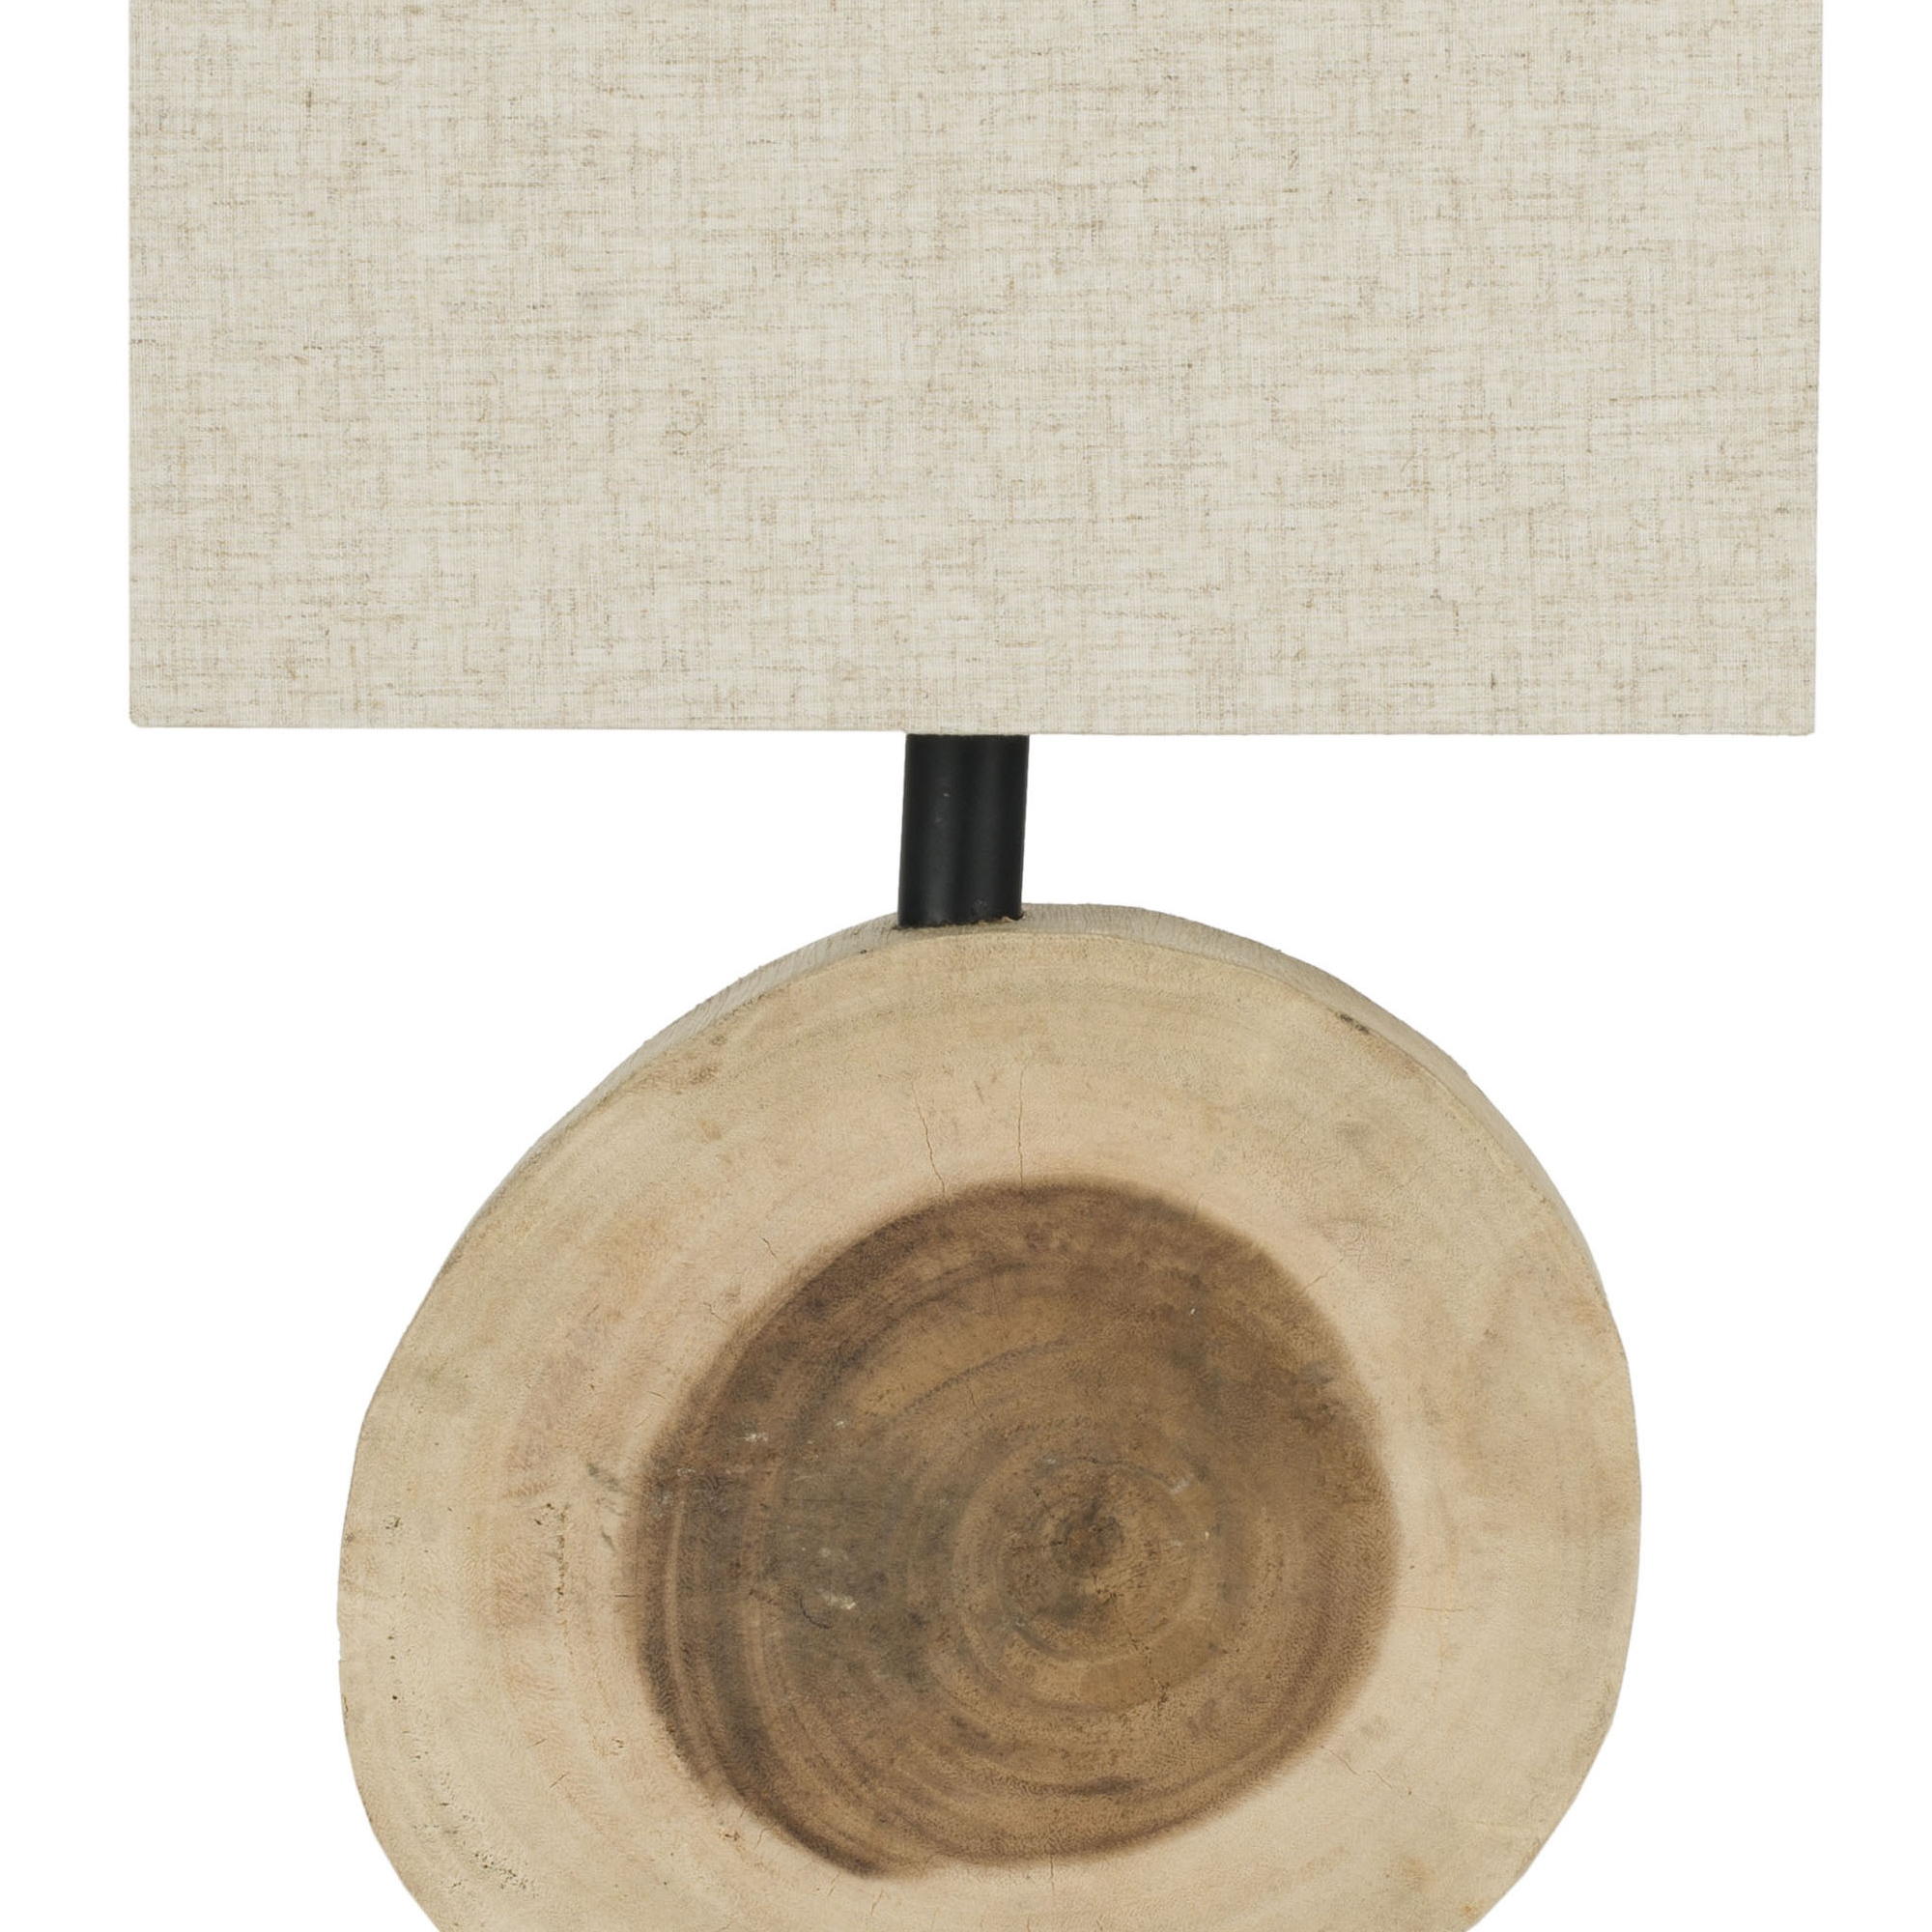 Safavieh-Forester-Natural-Wood-Indoor-Lamp-437ea3ac-cd35-413b-8ba8-7a71e554c587